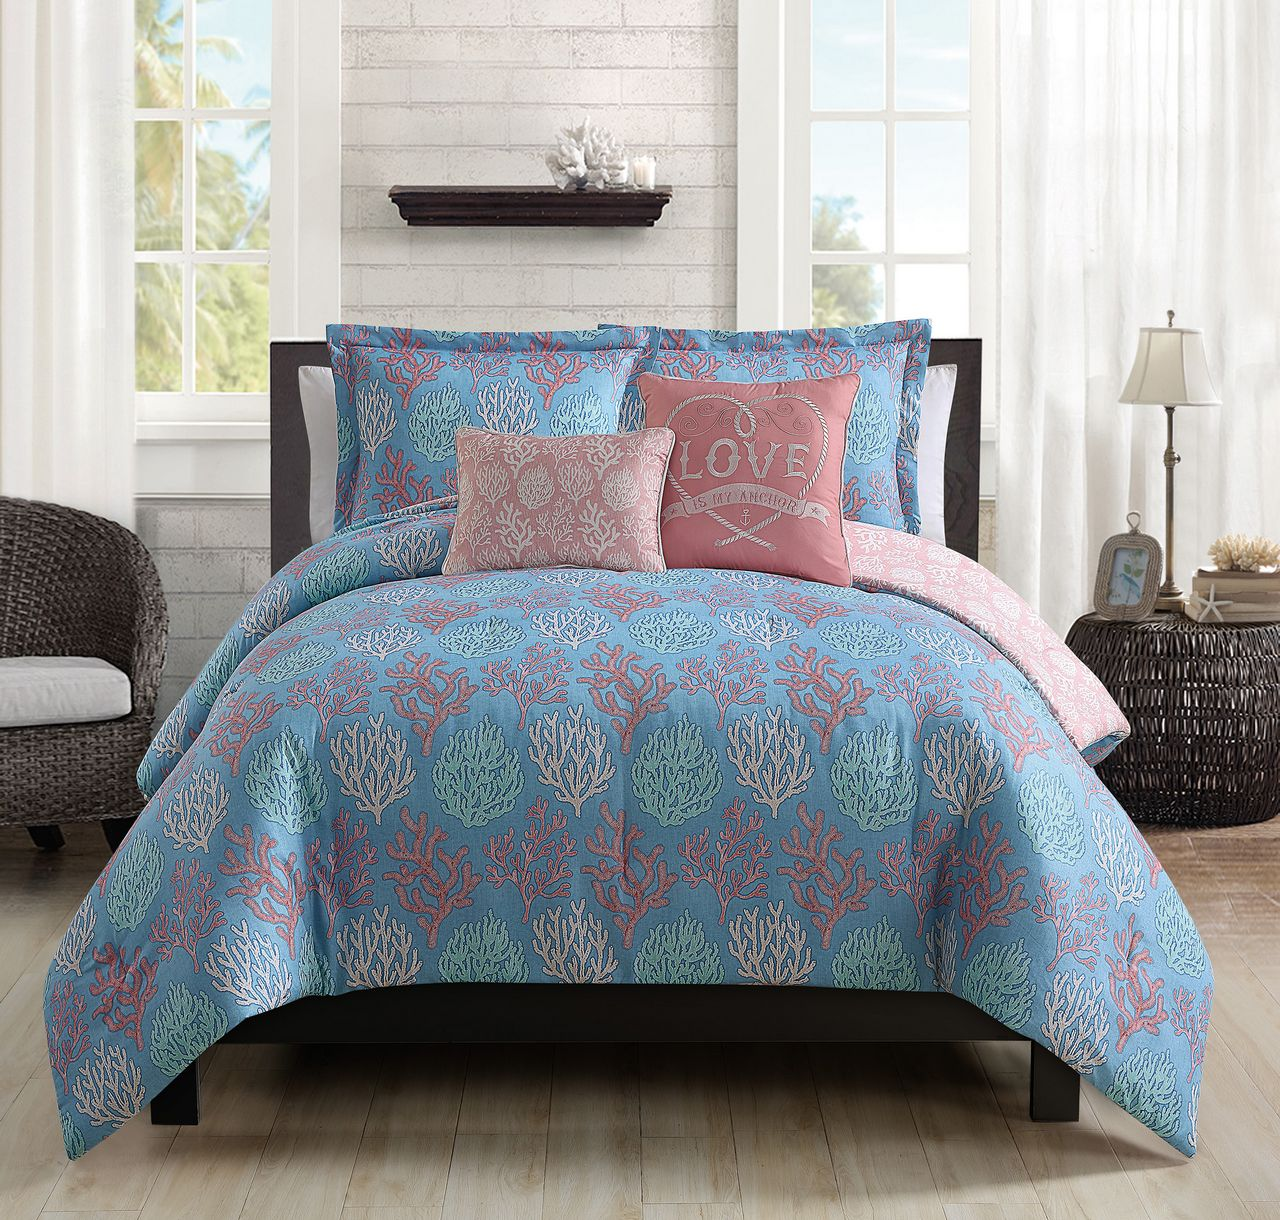 home amazon piece coral park dp central bed com king kitchen set luxury bedding comforter